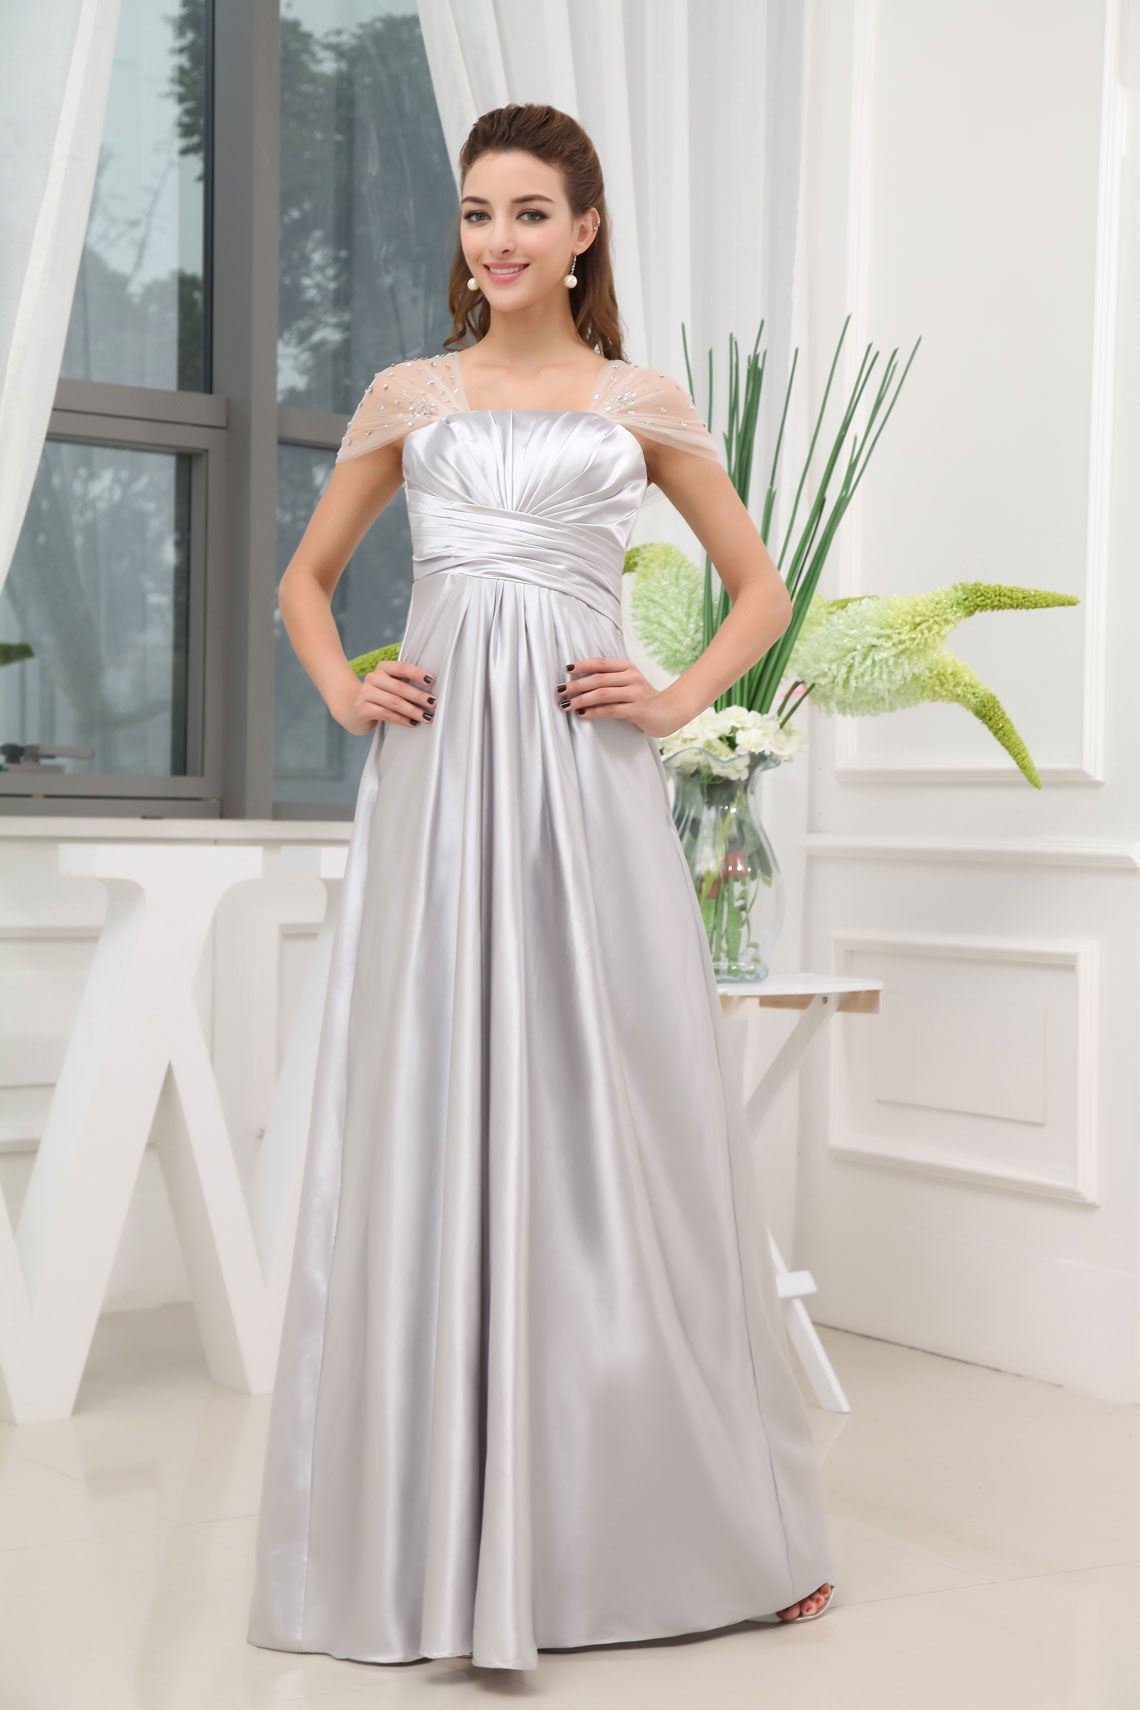 Wedding dress for evening  Silver Cap Sleeves Evening Gowns Prom Bridesmaid Dresses  Prom